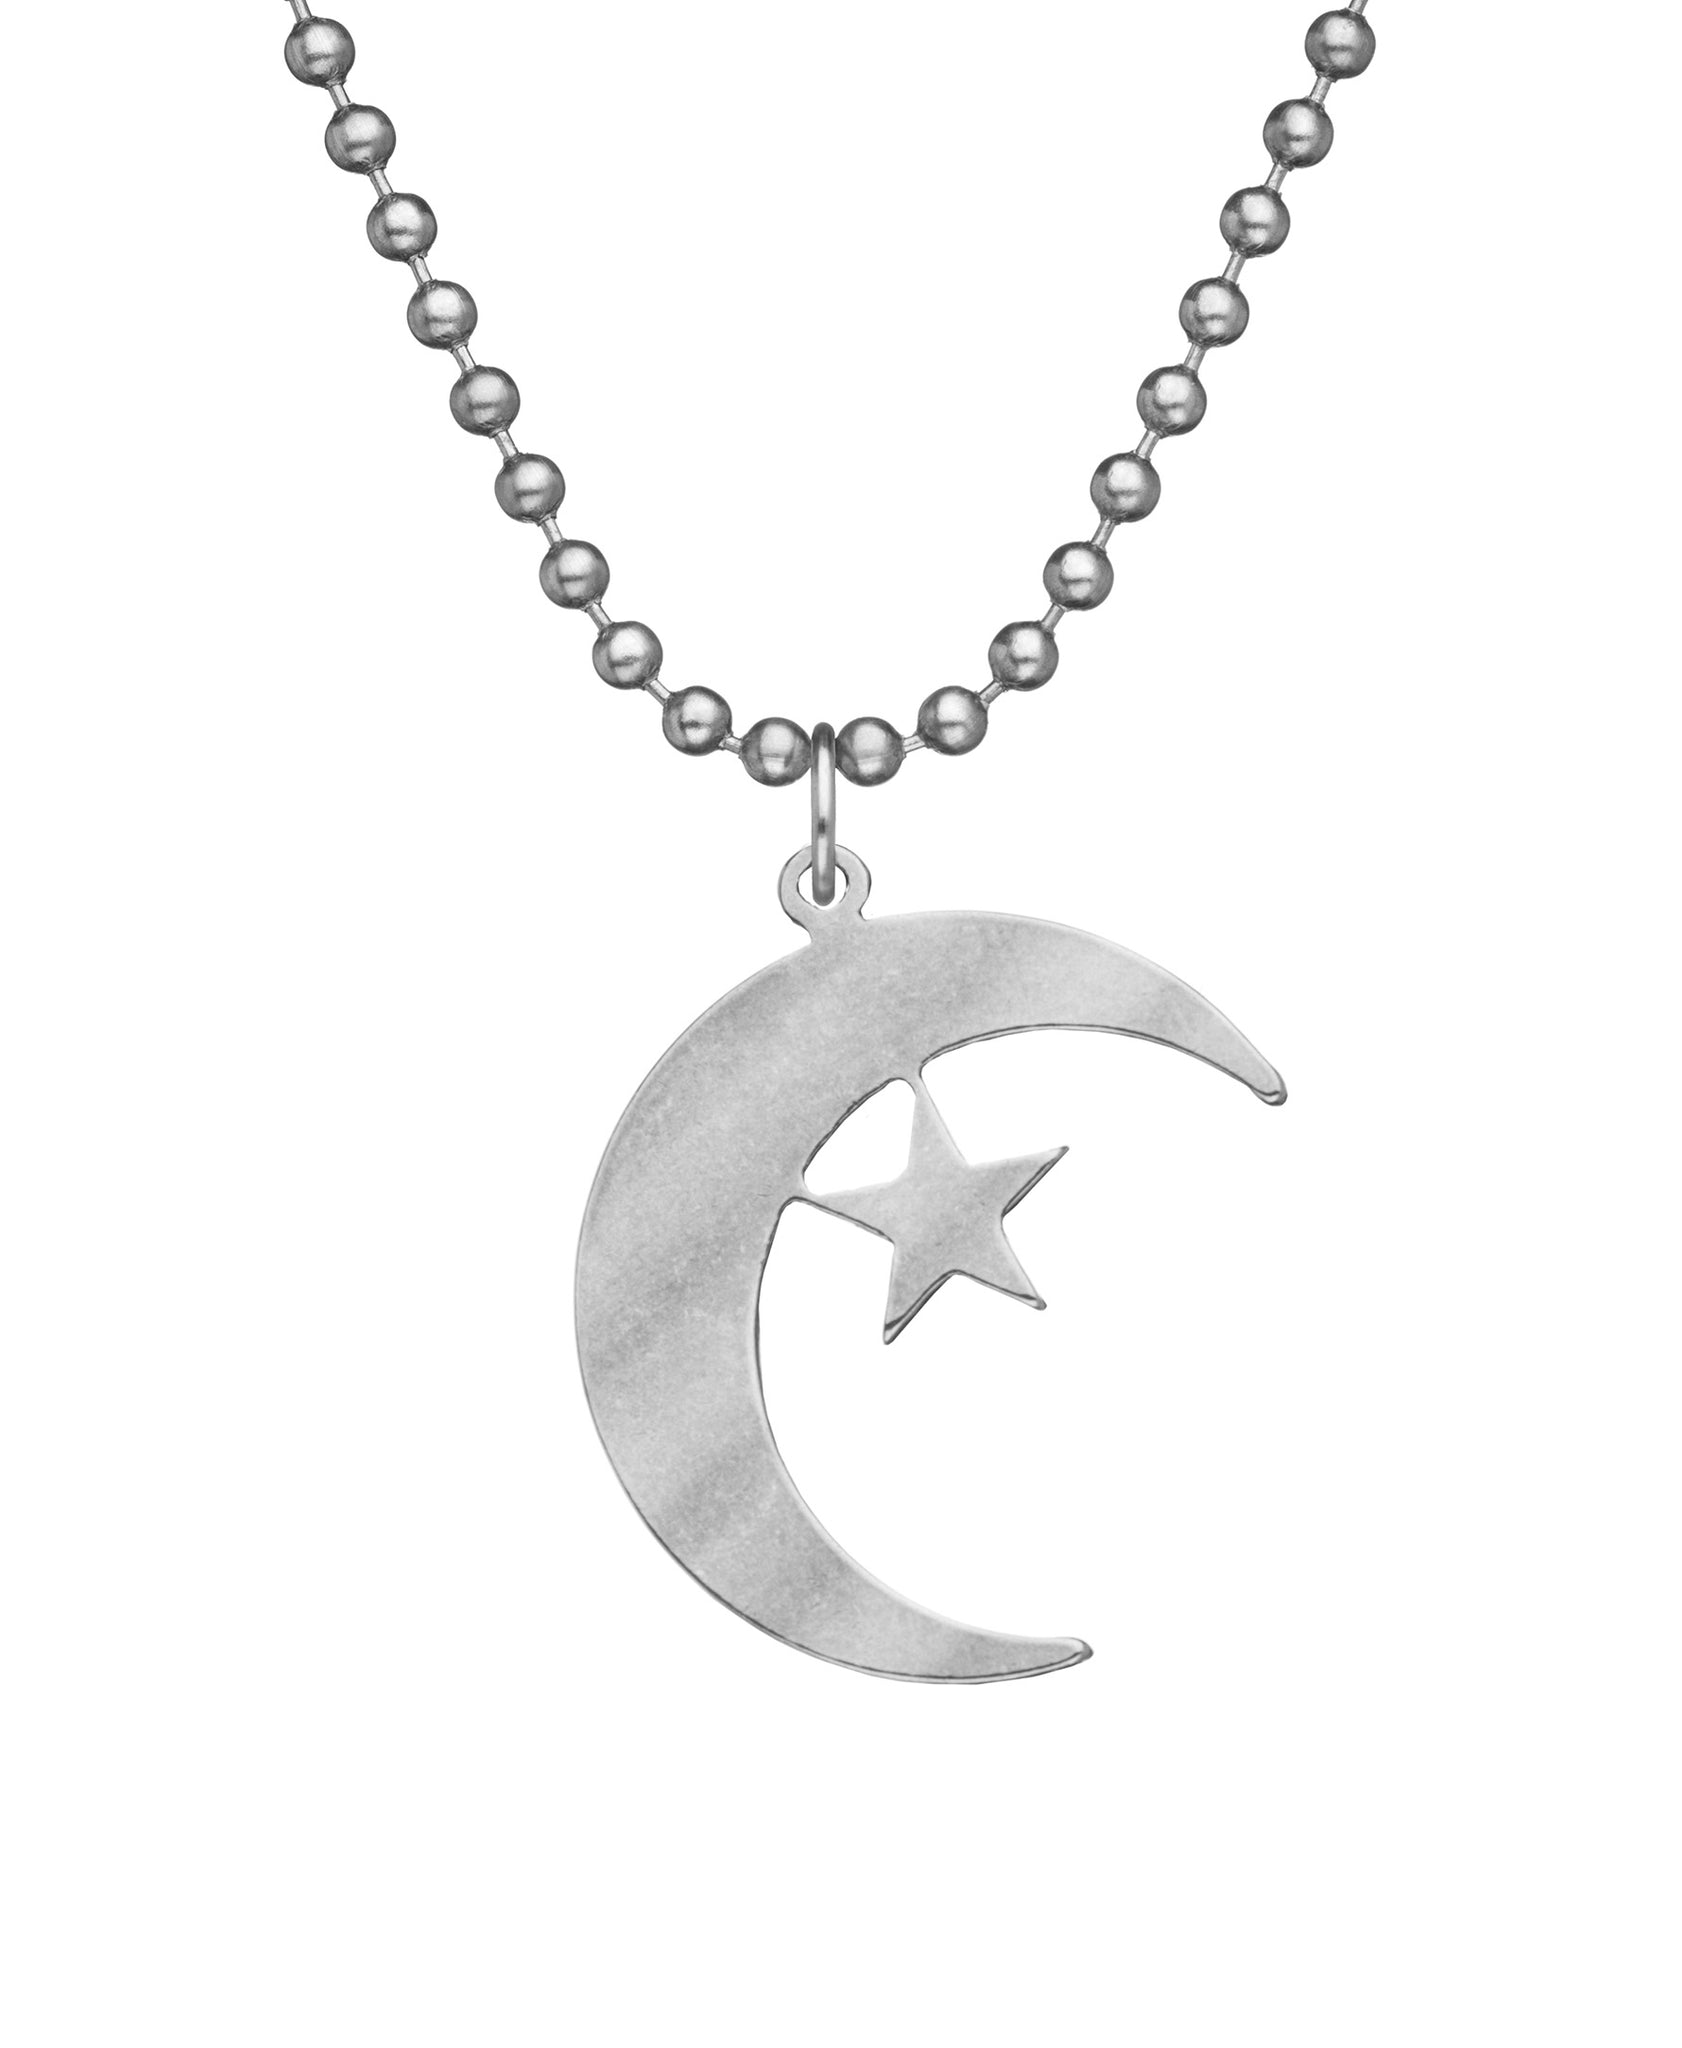 QUICK ORDER for Muslim Pendants: 2 Products